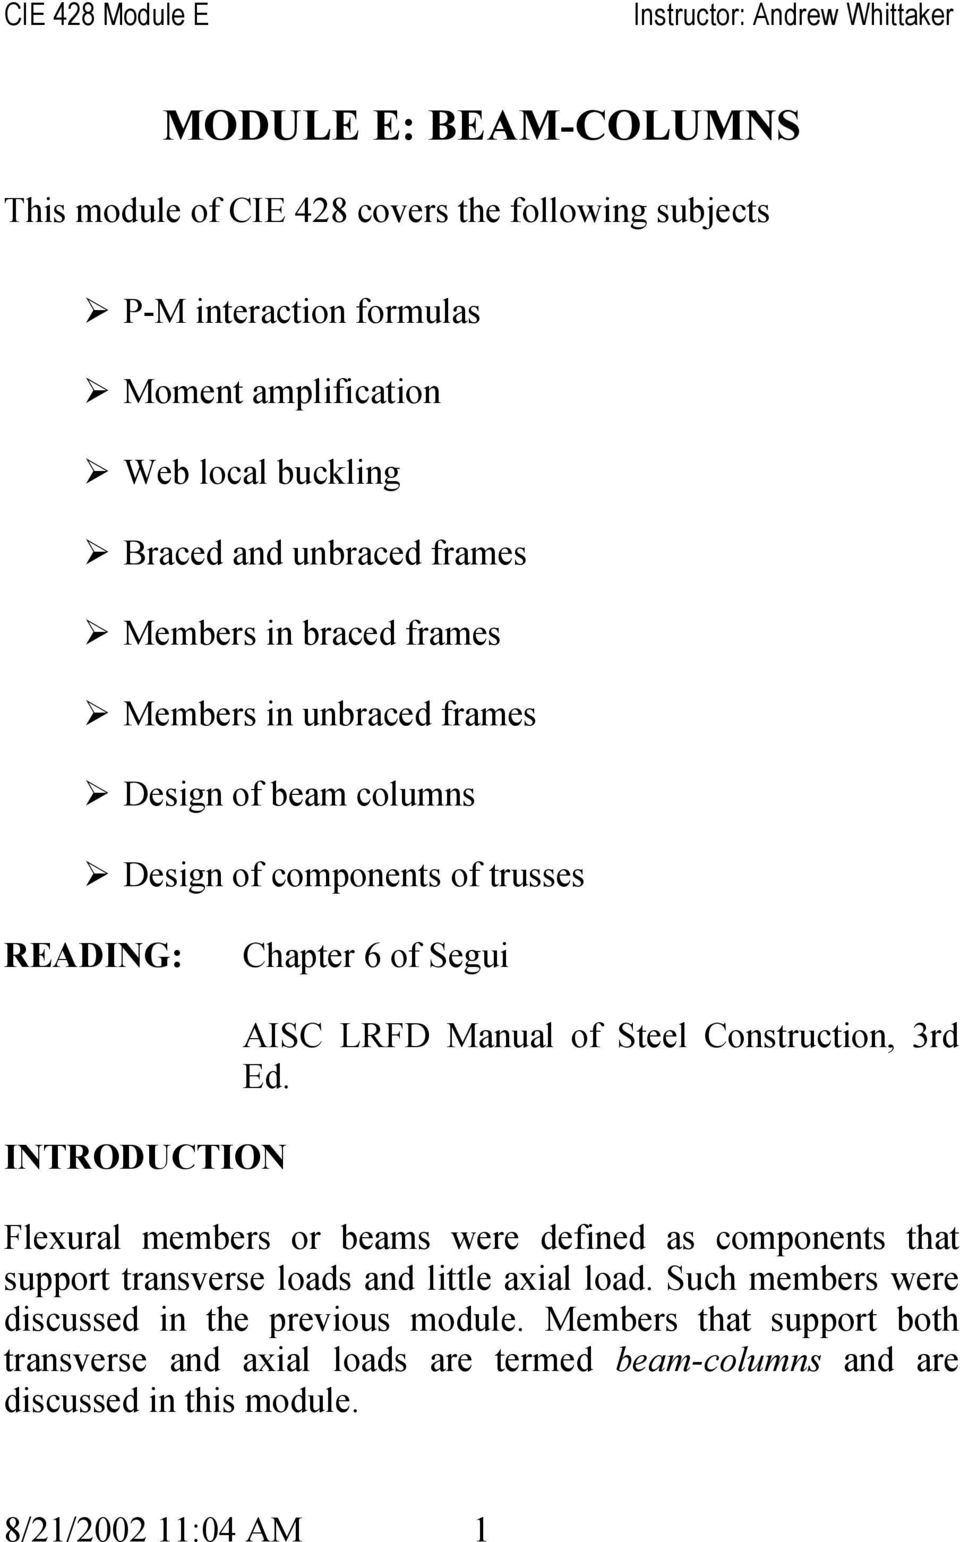 LRFD Manual of Steel Construction, 3rd Ed. Flexural members or beams were defined as components that support transverse loads and little axial load.